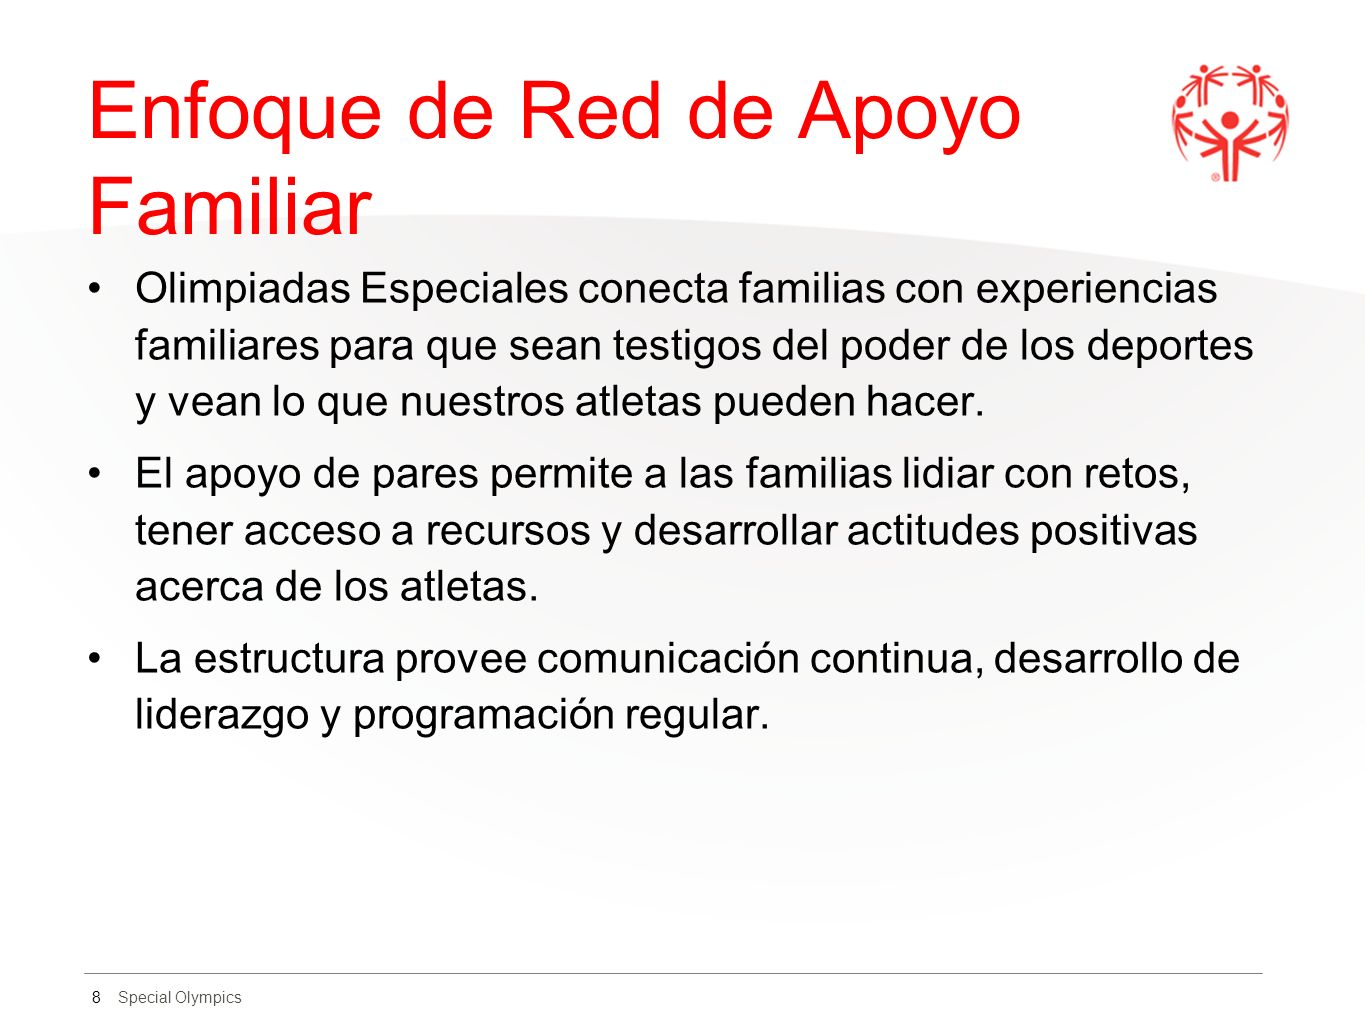 Enfoque de Red de Apoyo Familiar